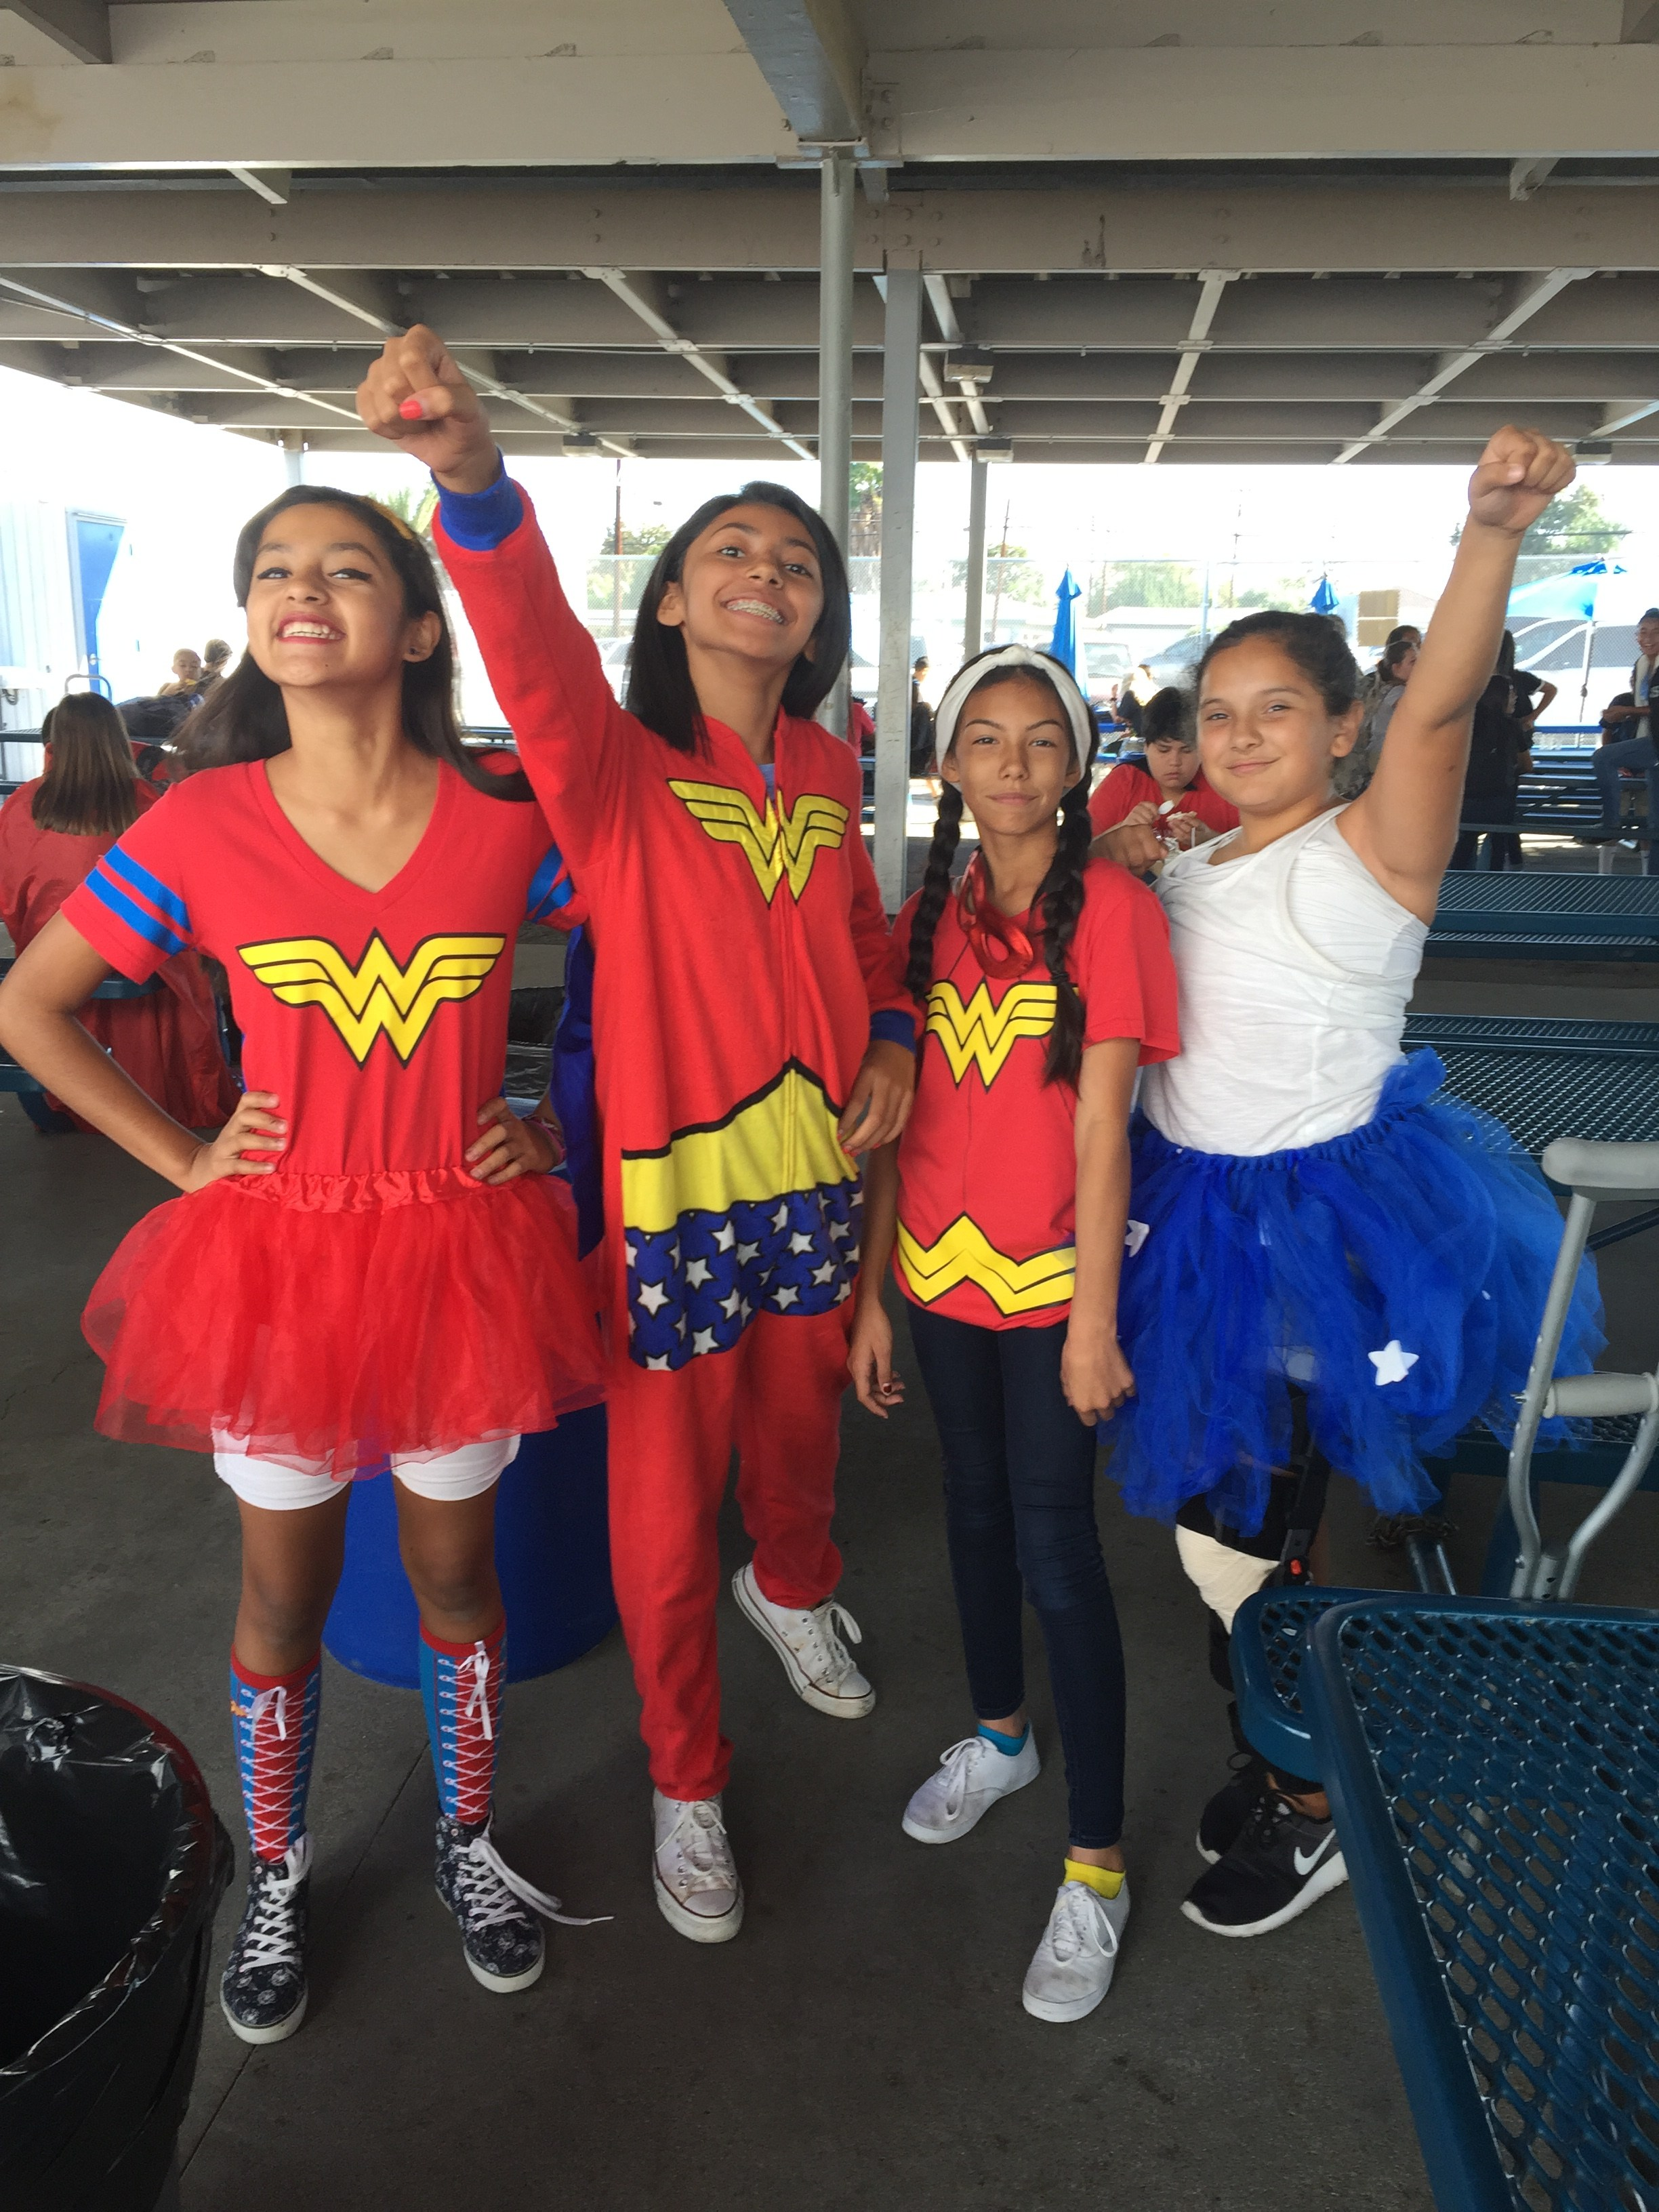 A group of students dressed up as superheros and posing